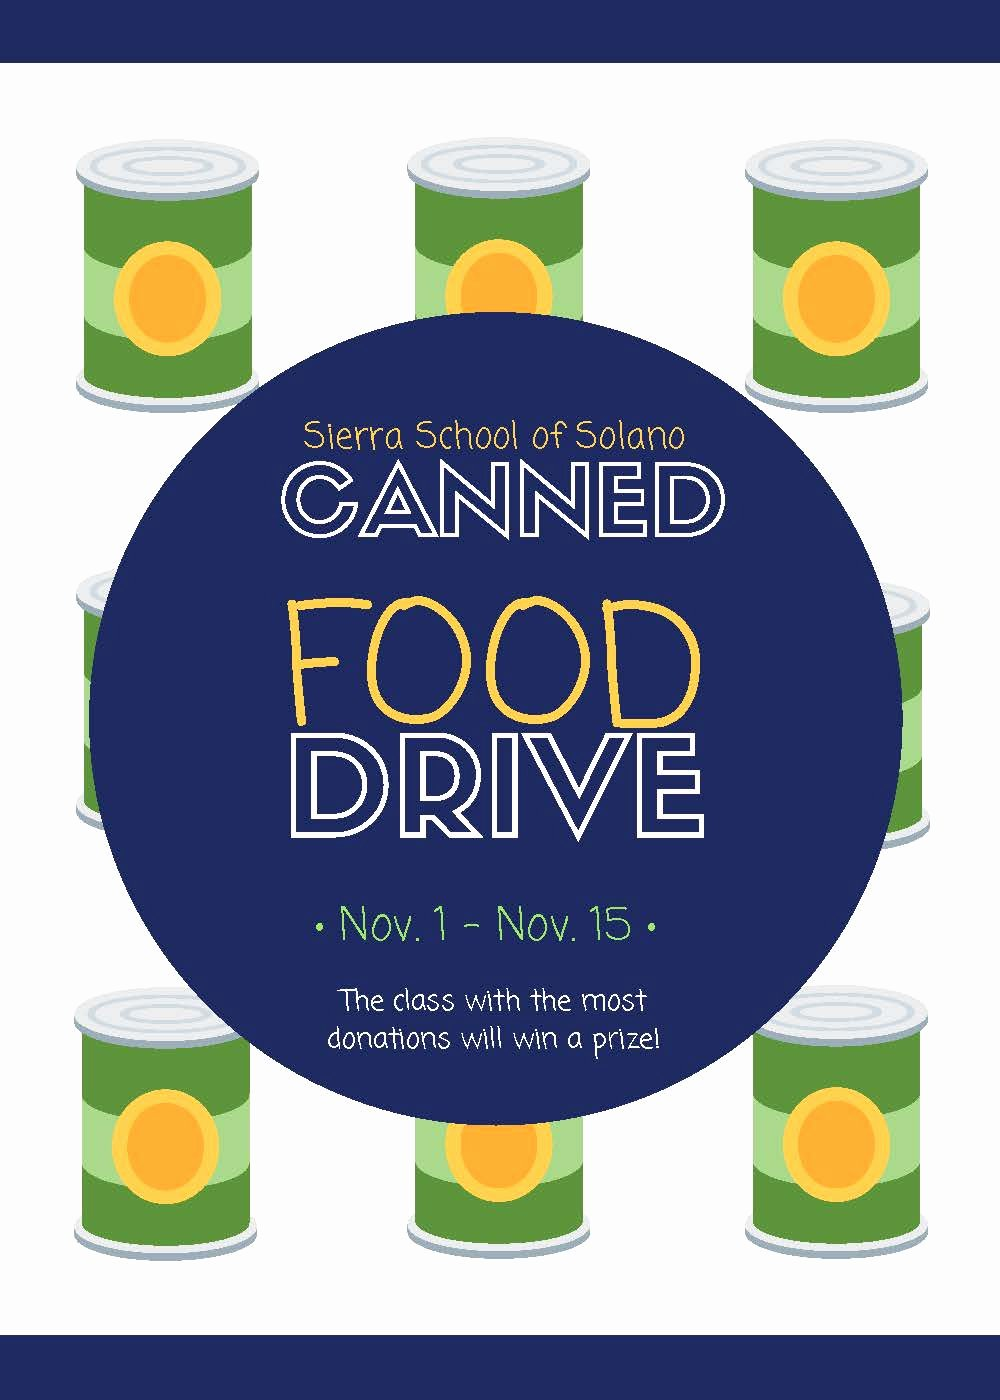 Can Food Drive Flyer Inspirational solano Canned Food Drive Flyer Catapult Learning